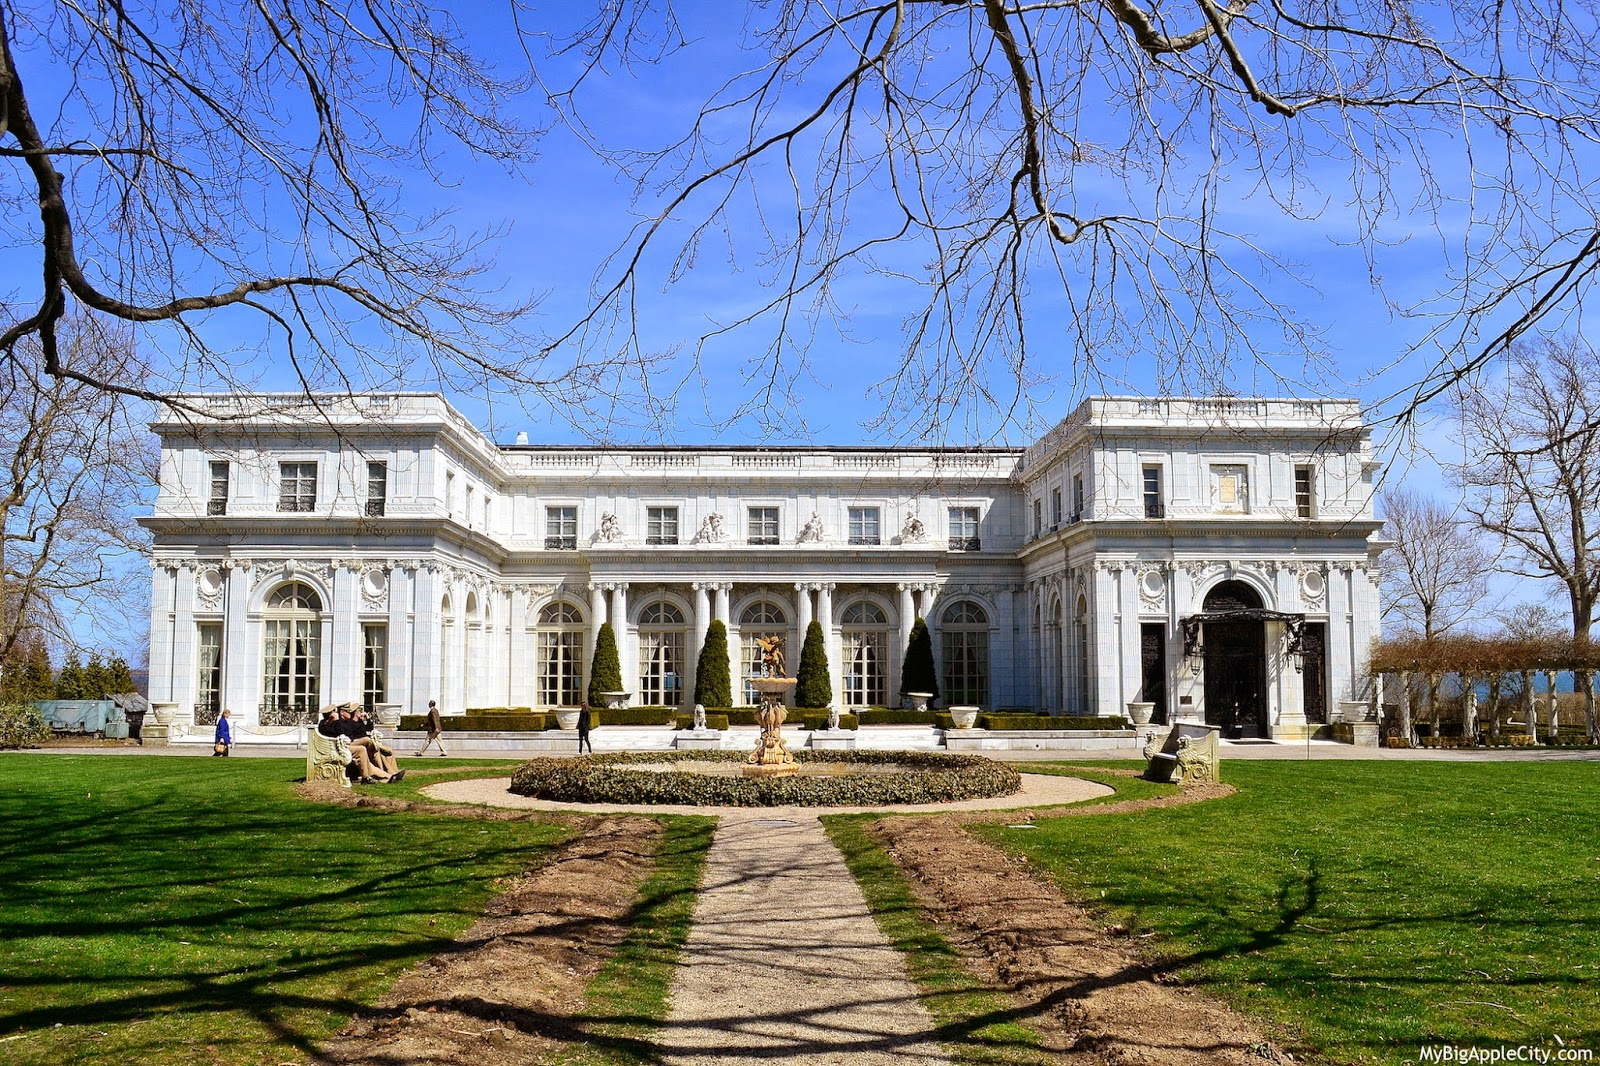 Rosecliff-Gatsby-house-Newport-movie-mybigapplecity